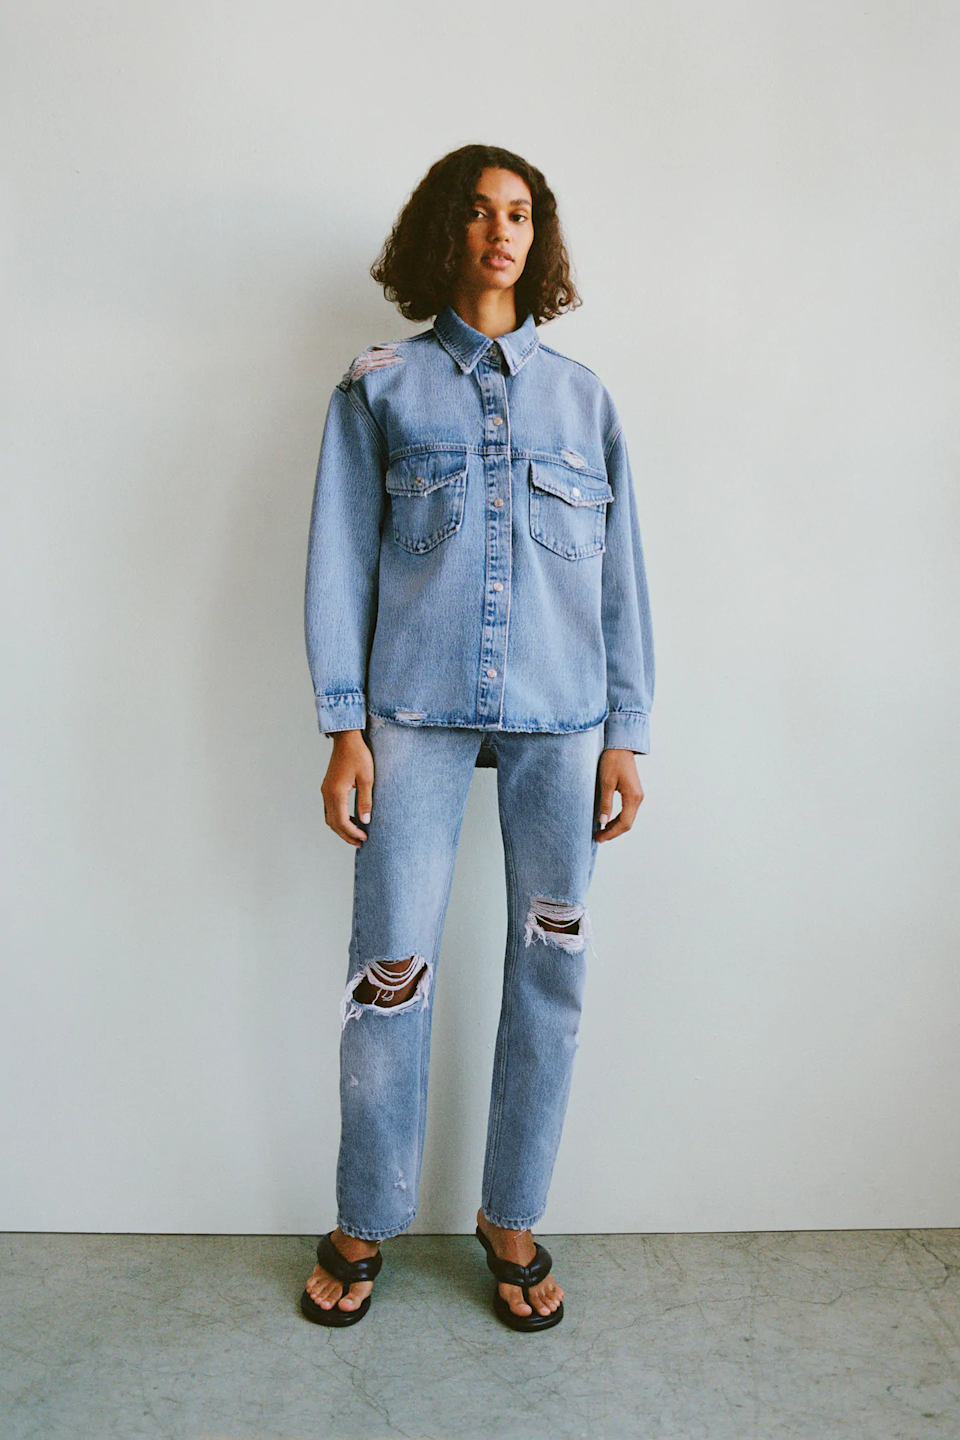 """<h2>Non-Skinny Jeans</h2><br><br><strong>Zara</strong> Ripped Pink Dye Stained Jeans, $, available at <a href=""""https://go.skimresources.com/?id=30283X879131&url=https%3A%2F%2Fwww.zara.com%2Fus%2Fen%2Fripped-pink-dye-stained-jeans-p08727067.html"""" rel=""""nofollow noopener"""" target=""""_blank"""" data-ylk=""""slk:Zara"""" class=""""link rapid-noclick-resp"""">Zara</a>"""